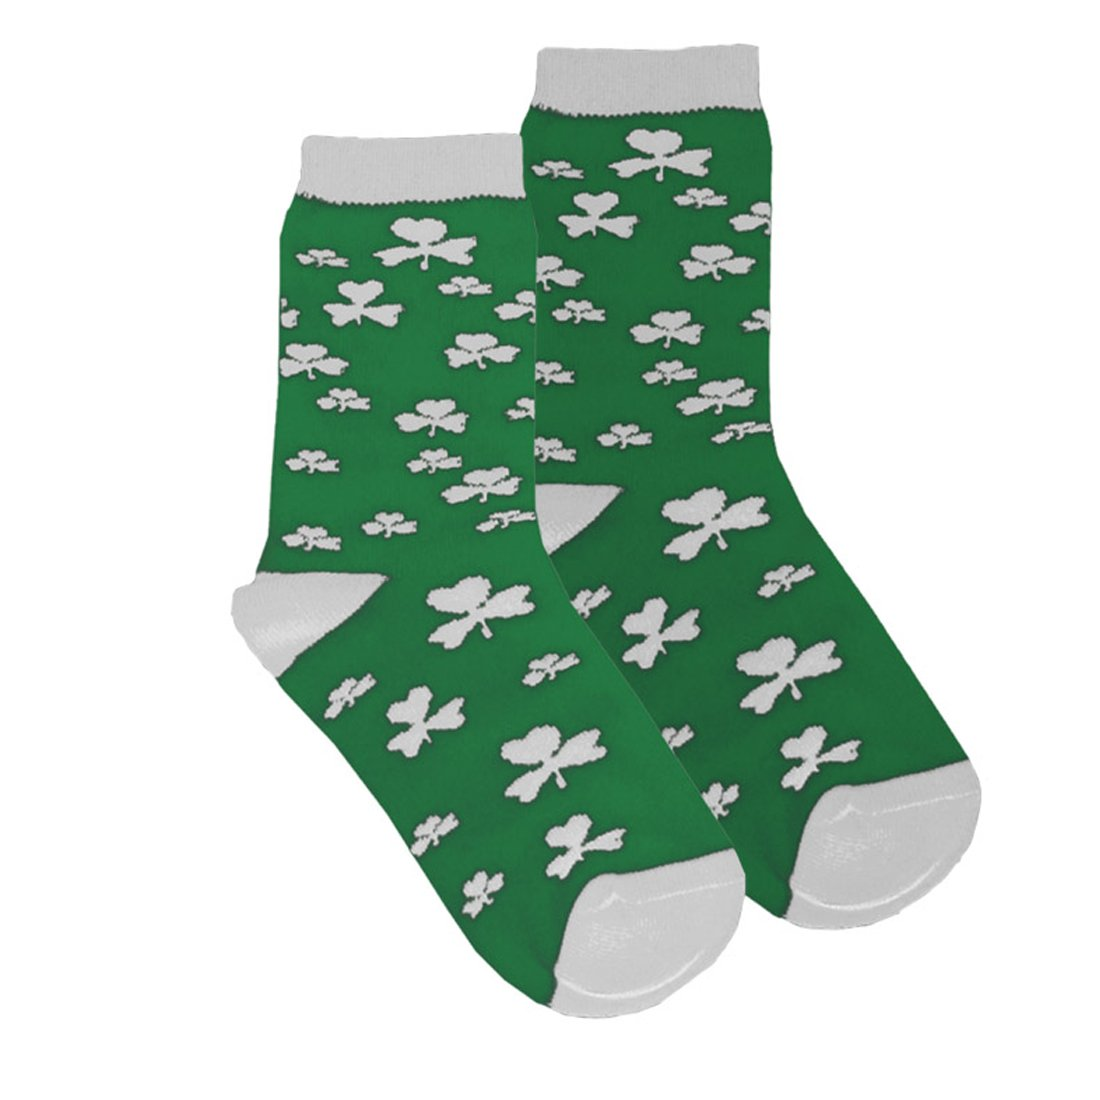 Kids Socks With White Shamrock Print, Green Colour Traditional Craft